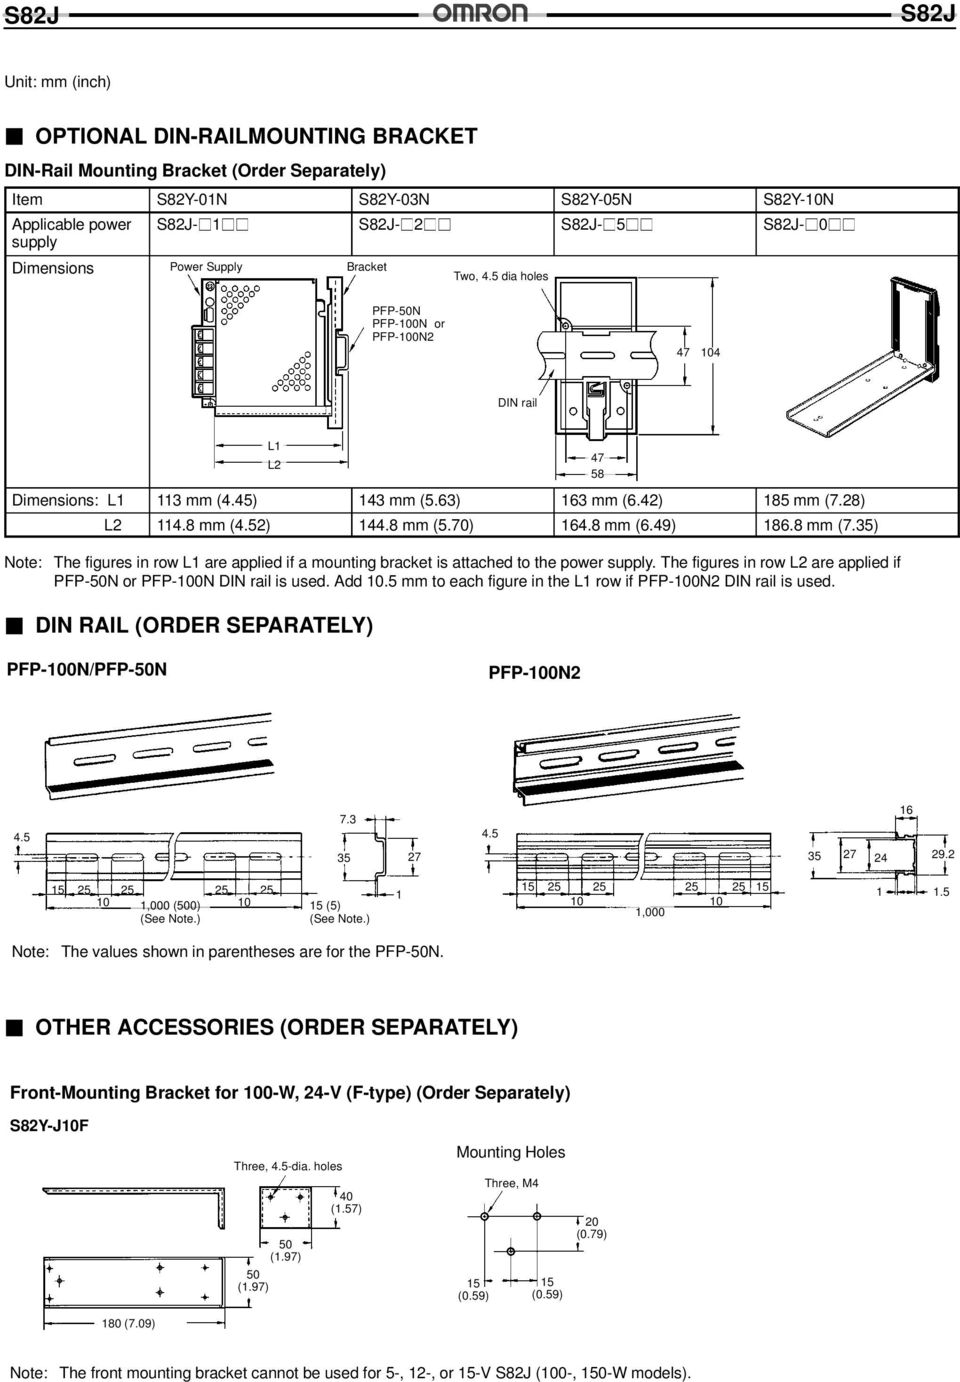 49) 186.8 mm (7.35) 47 58 The figures in row L1 are applied if a mounting bracket is attached to the power supply. The figures in row L2 are applied if PFP-50N or PFP-100N DIN rail is used. Add 10.